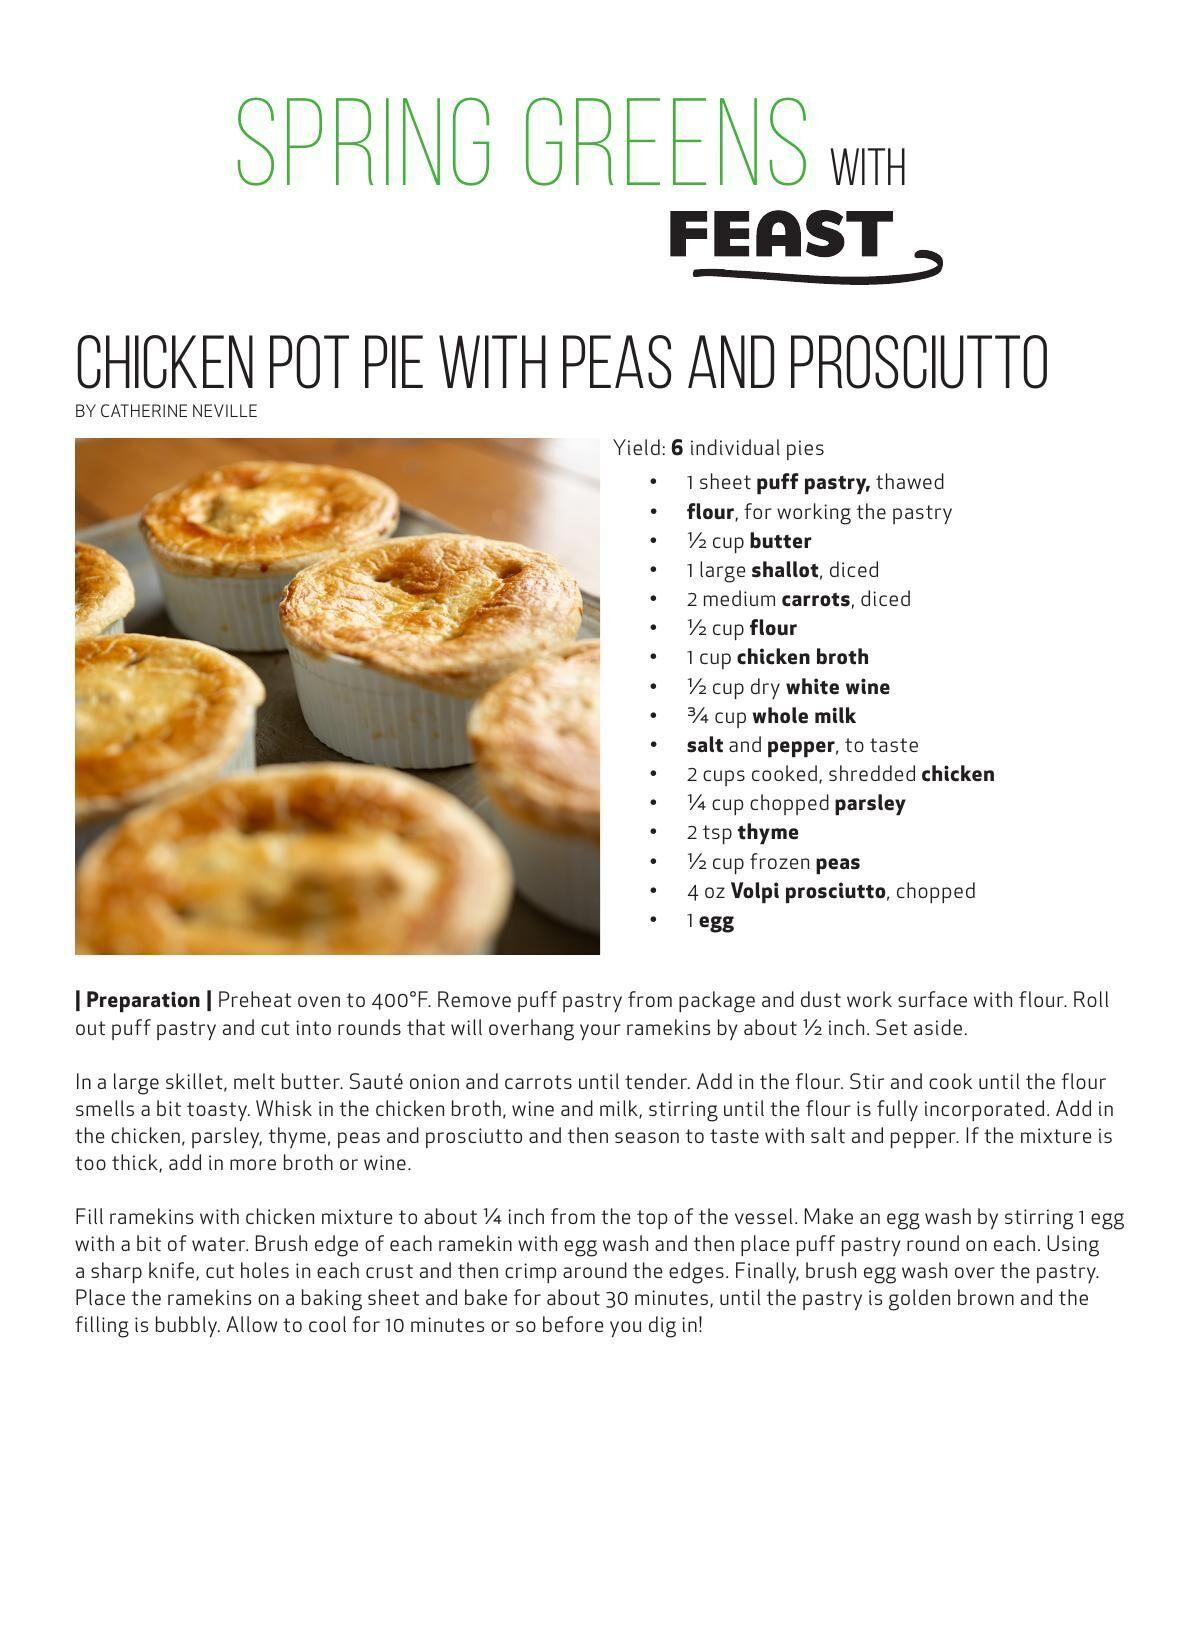 Download the Chicken Pot Pie with Peas and Prosciutto recipes